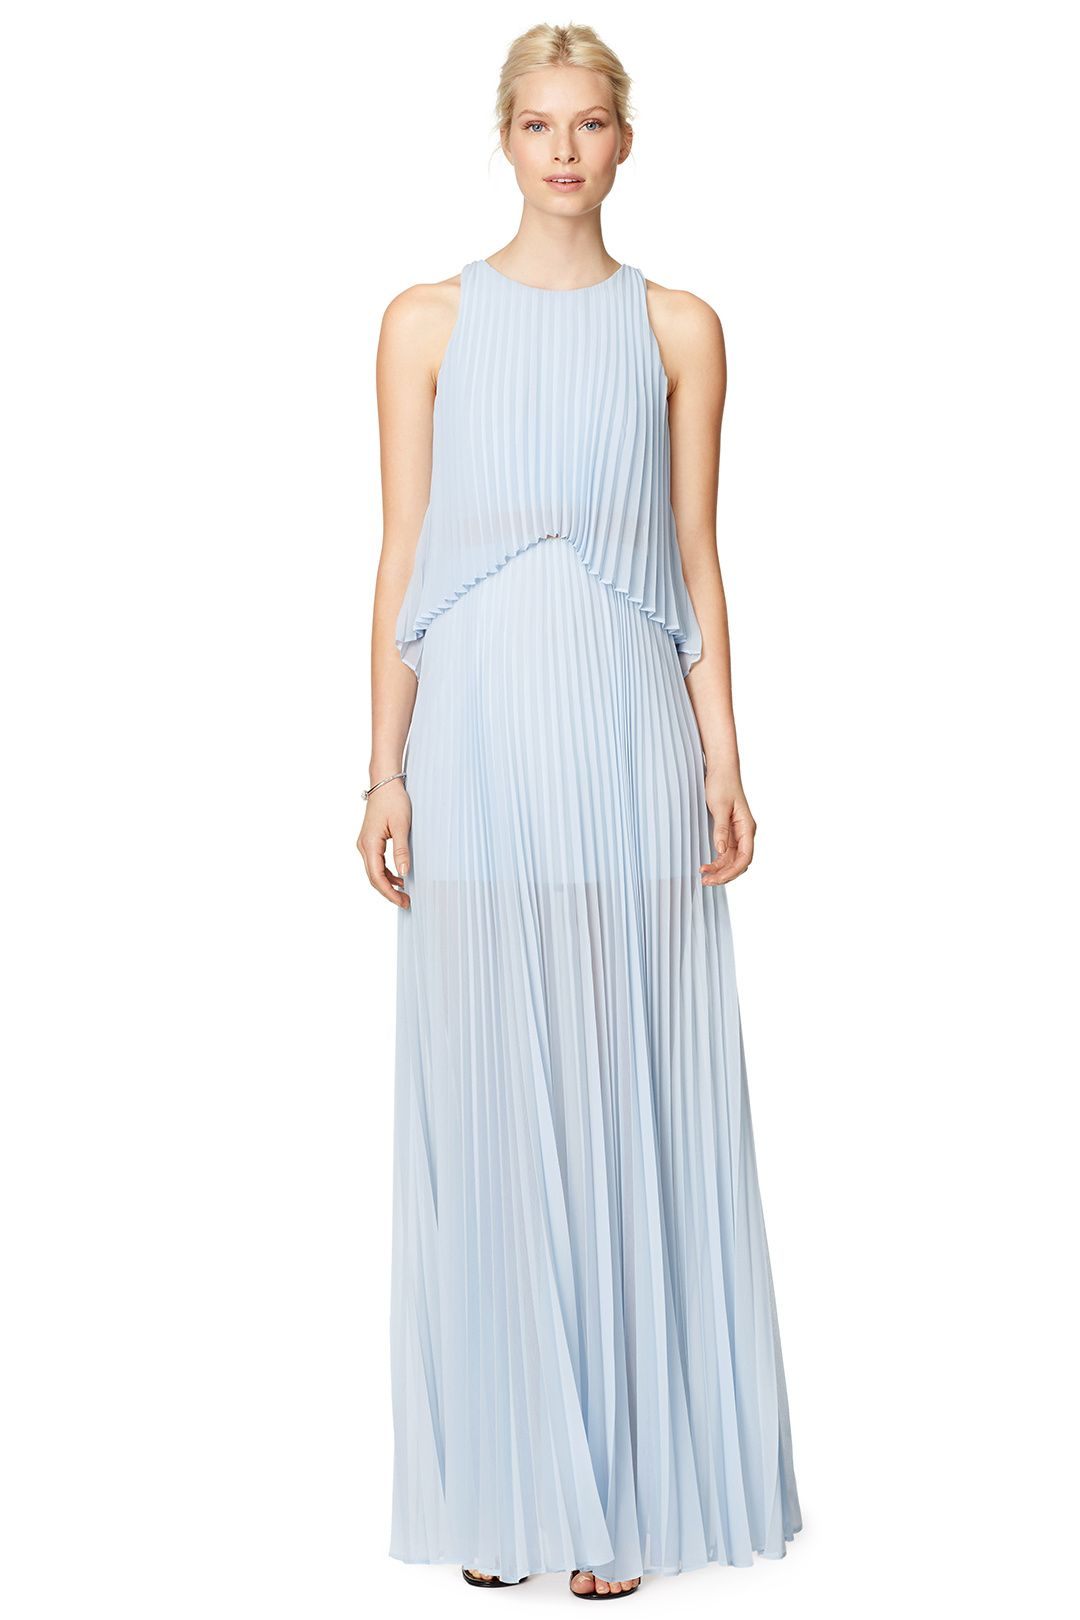 Guest of wedding dresses summer  Shaina Pleated Gown  Editorial Escapades  Pinterest  Gowns